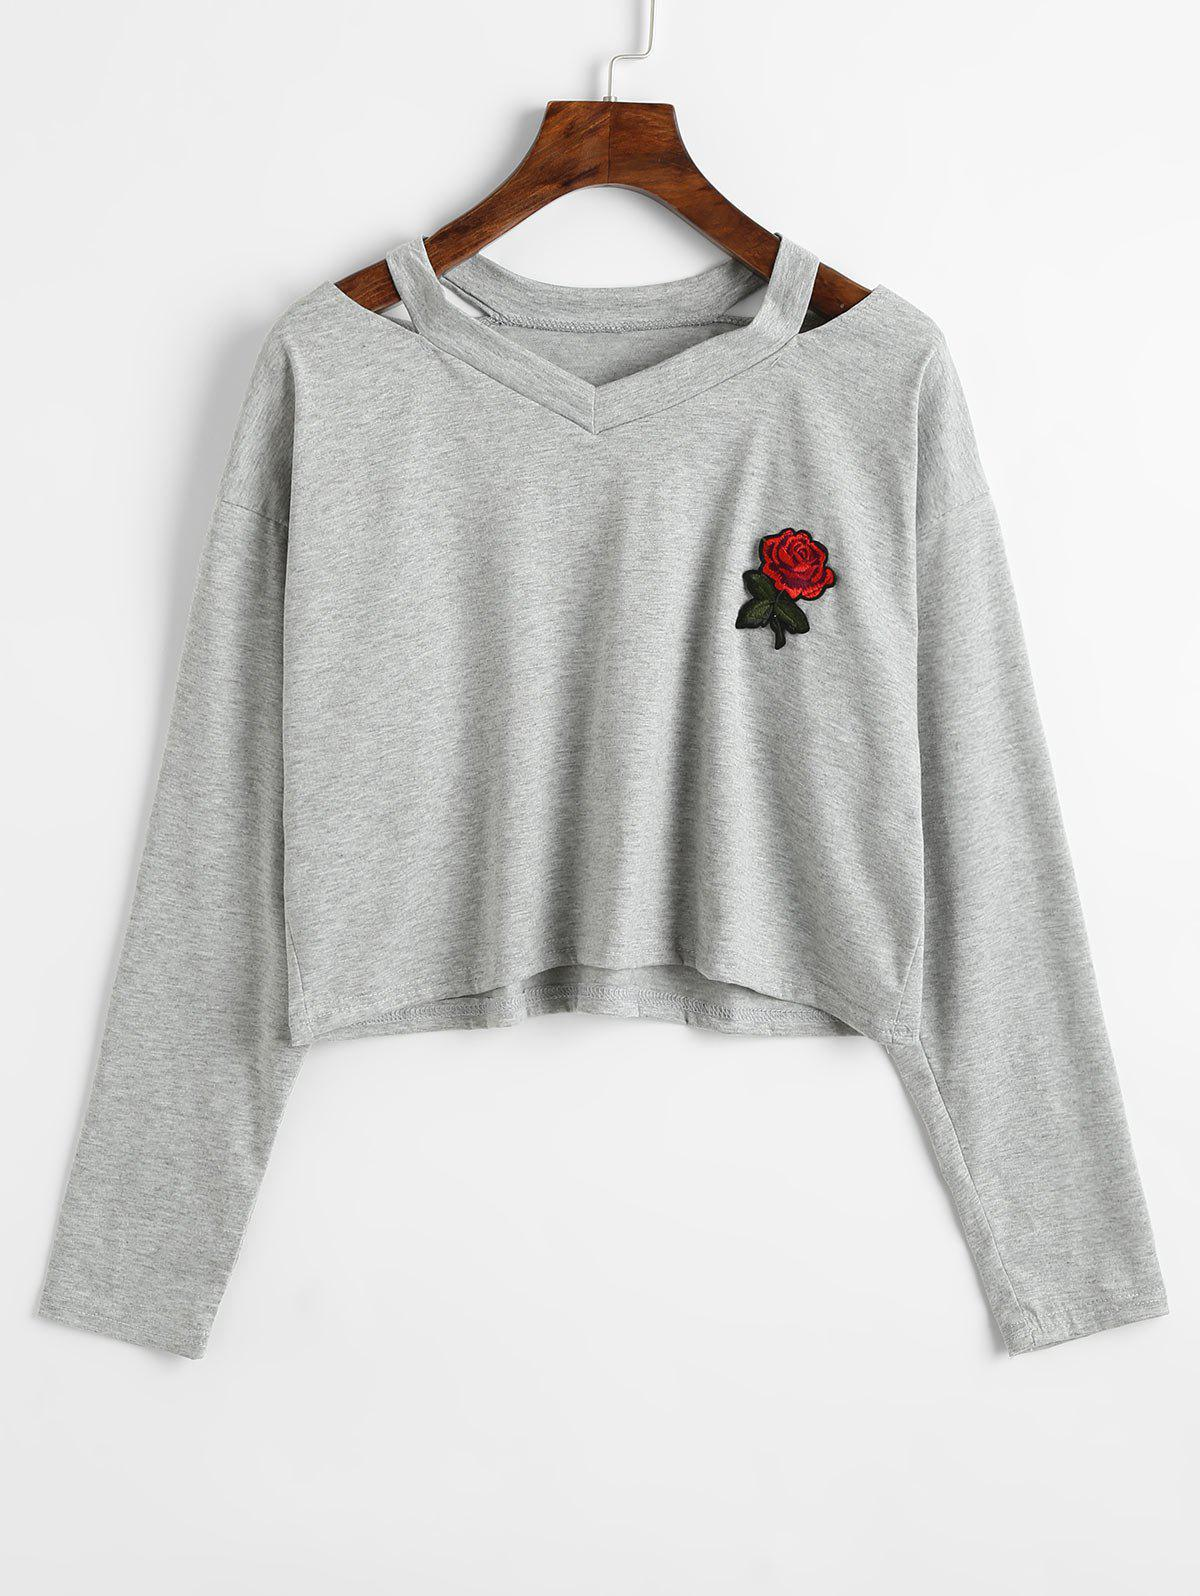 New Rose Embroidered Patches Cold Shoulder Sweatshirt